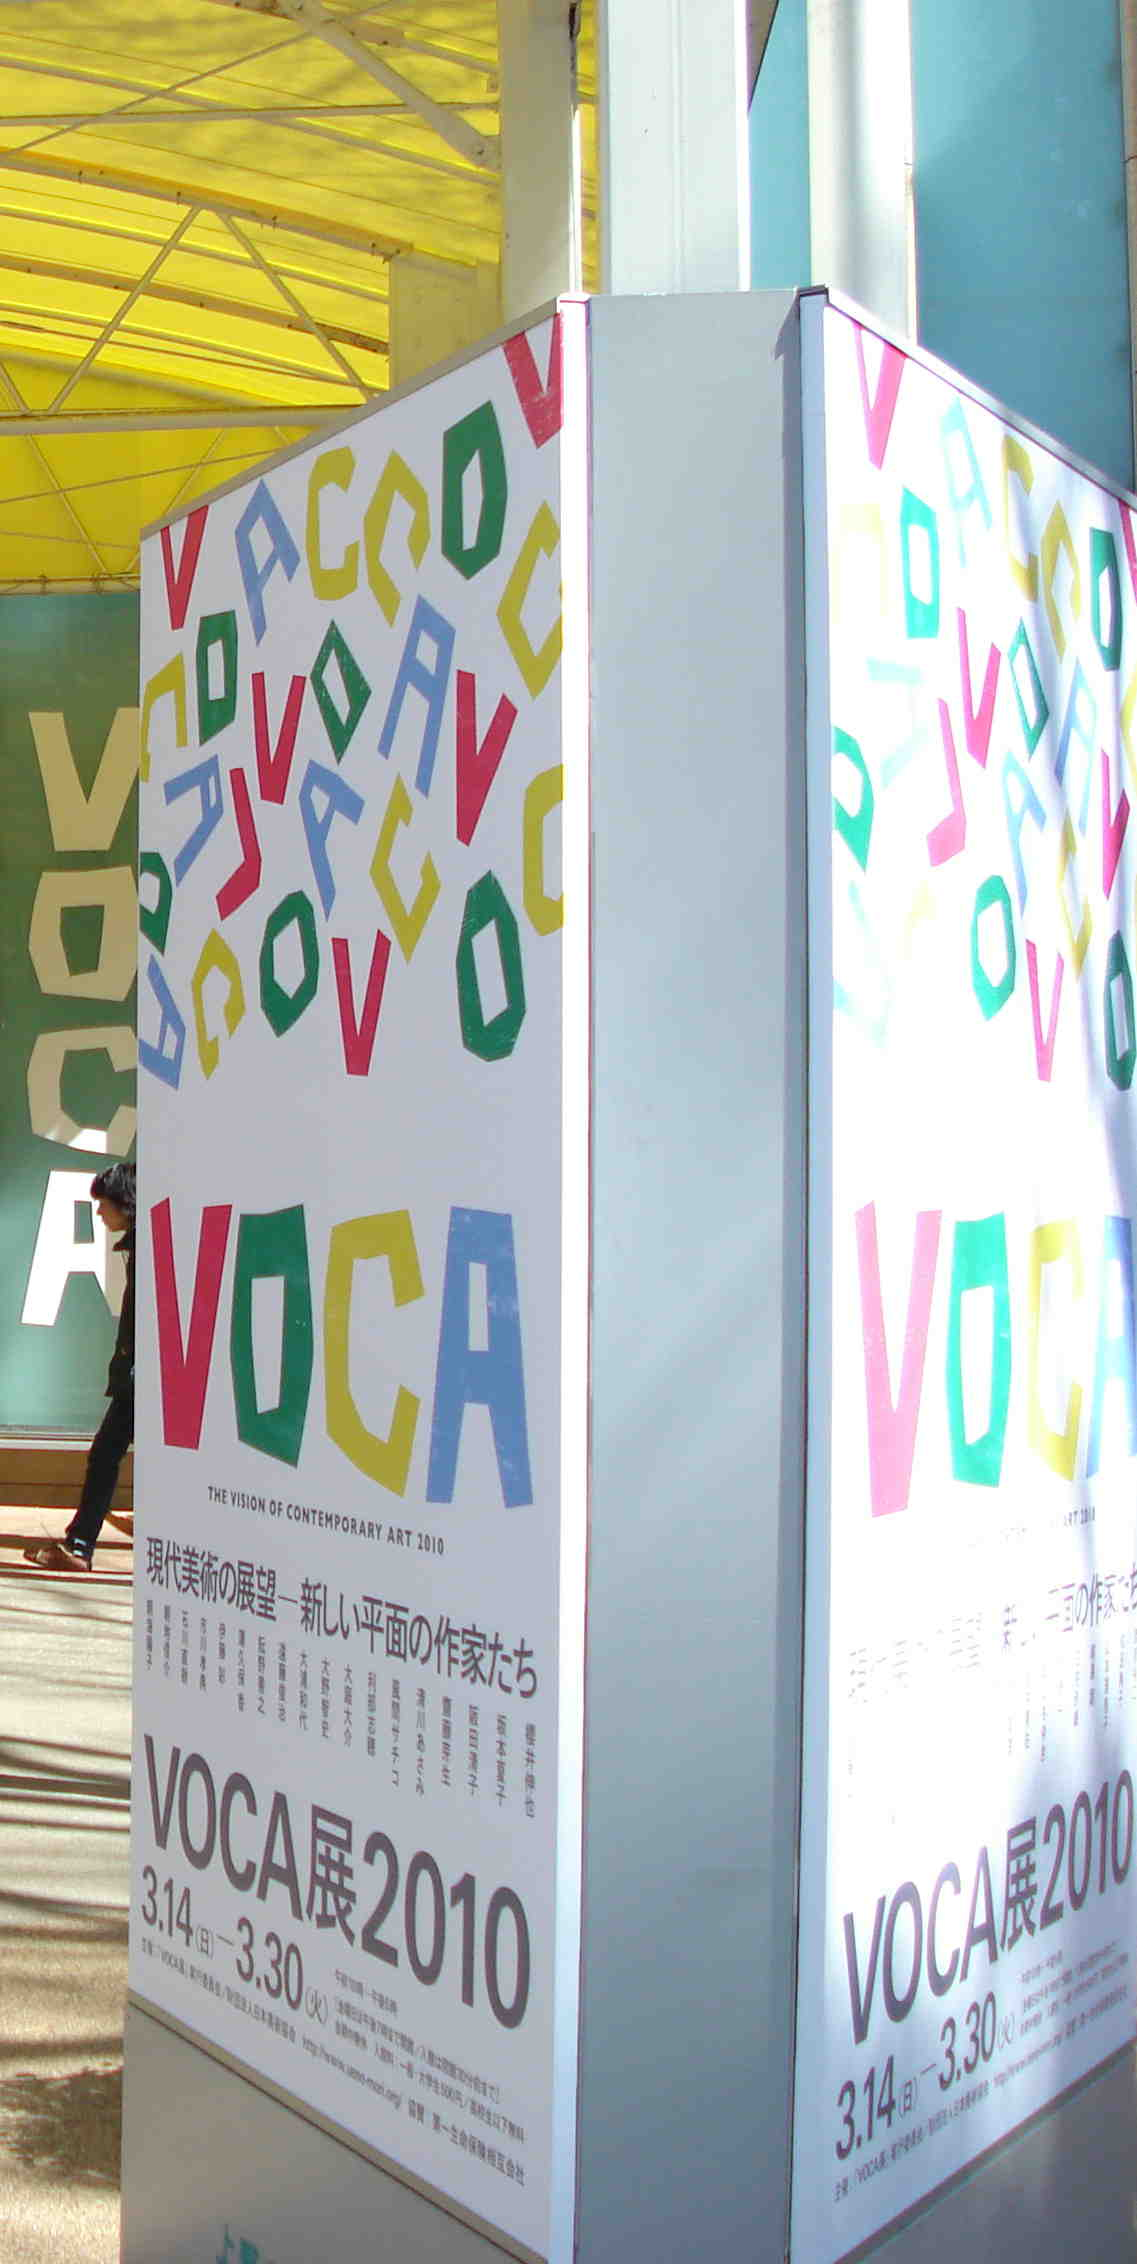 VOCA展2010を観る